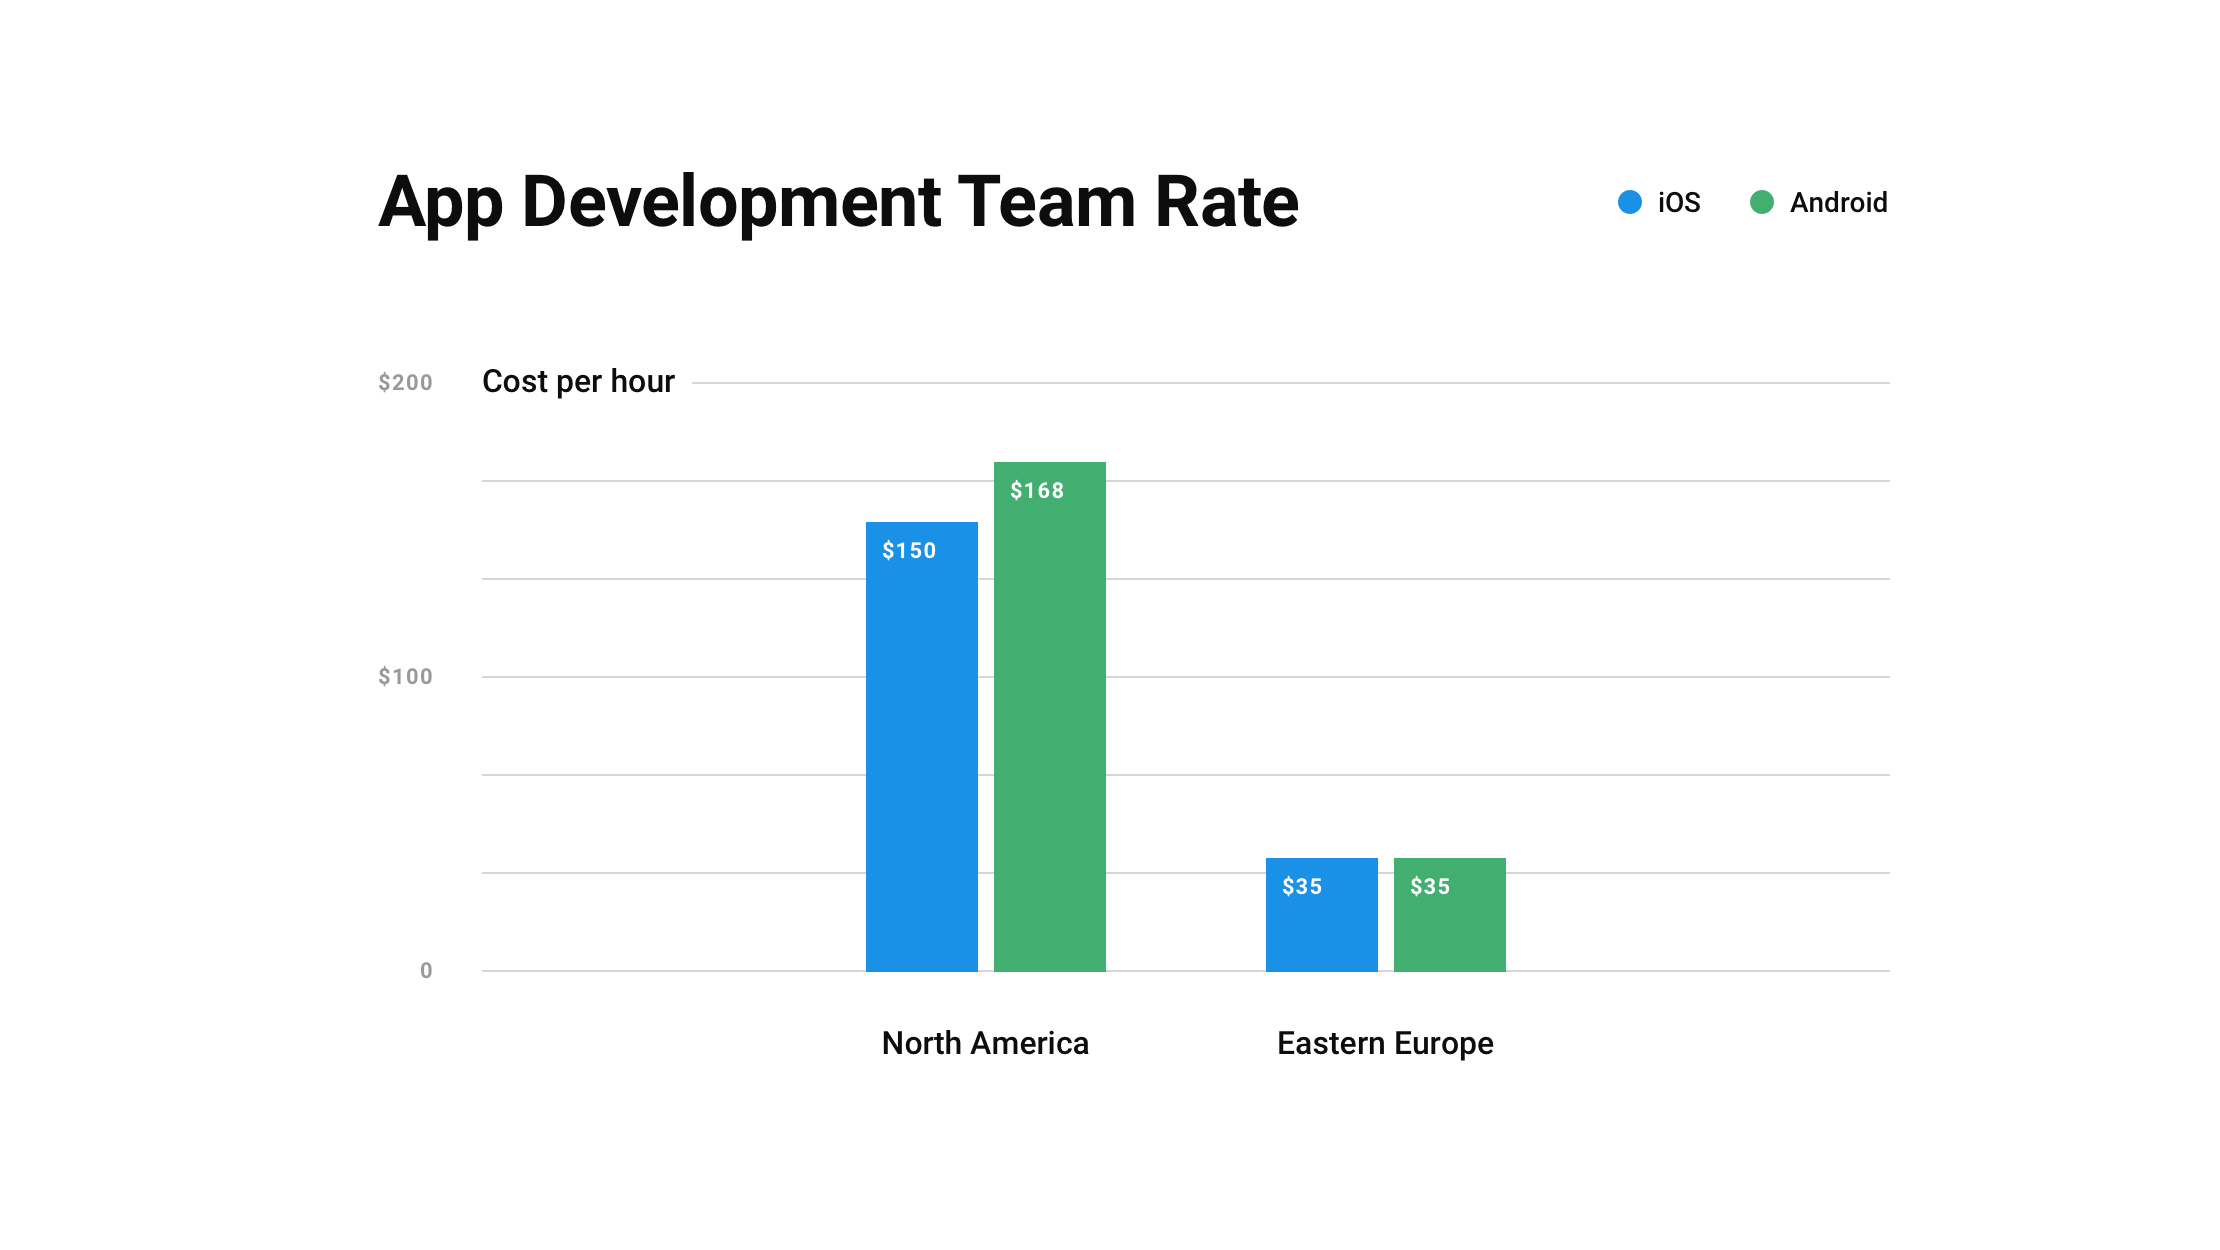 The app development team rate for iOS and Android in North America and Eastern Europe